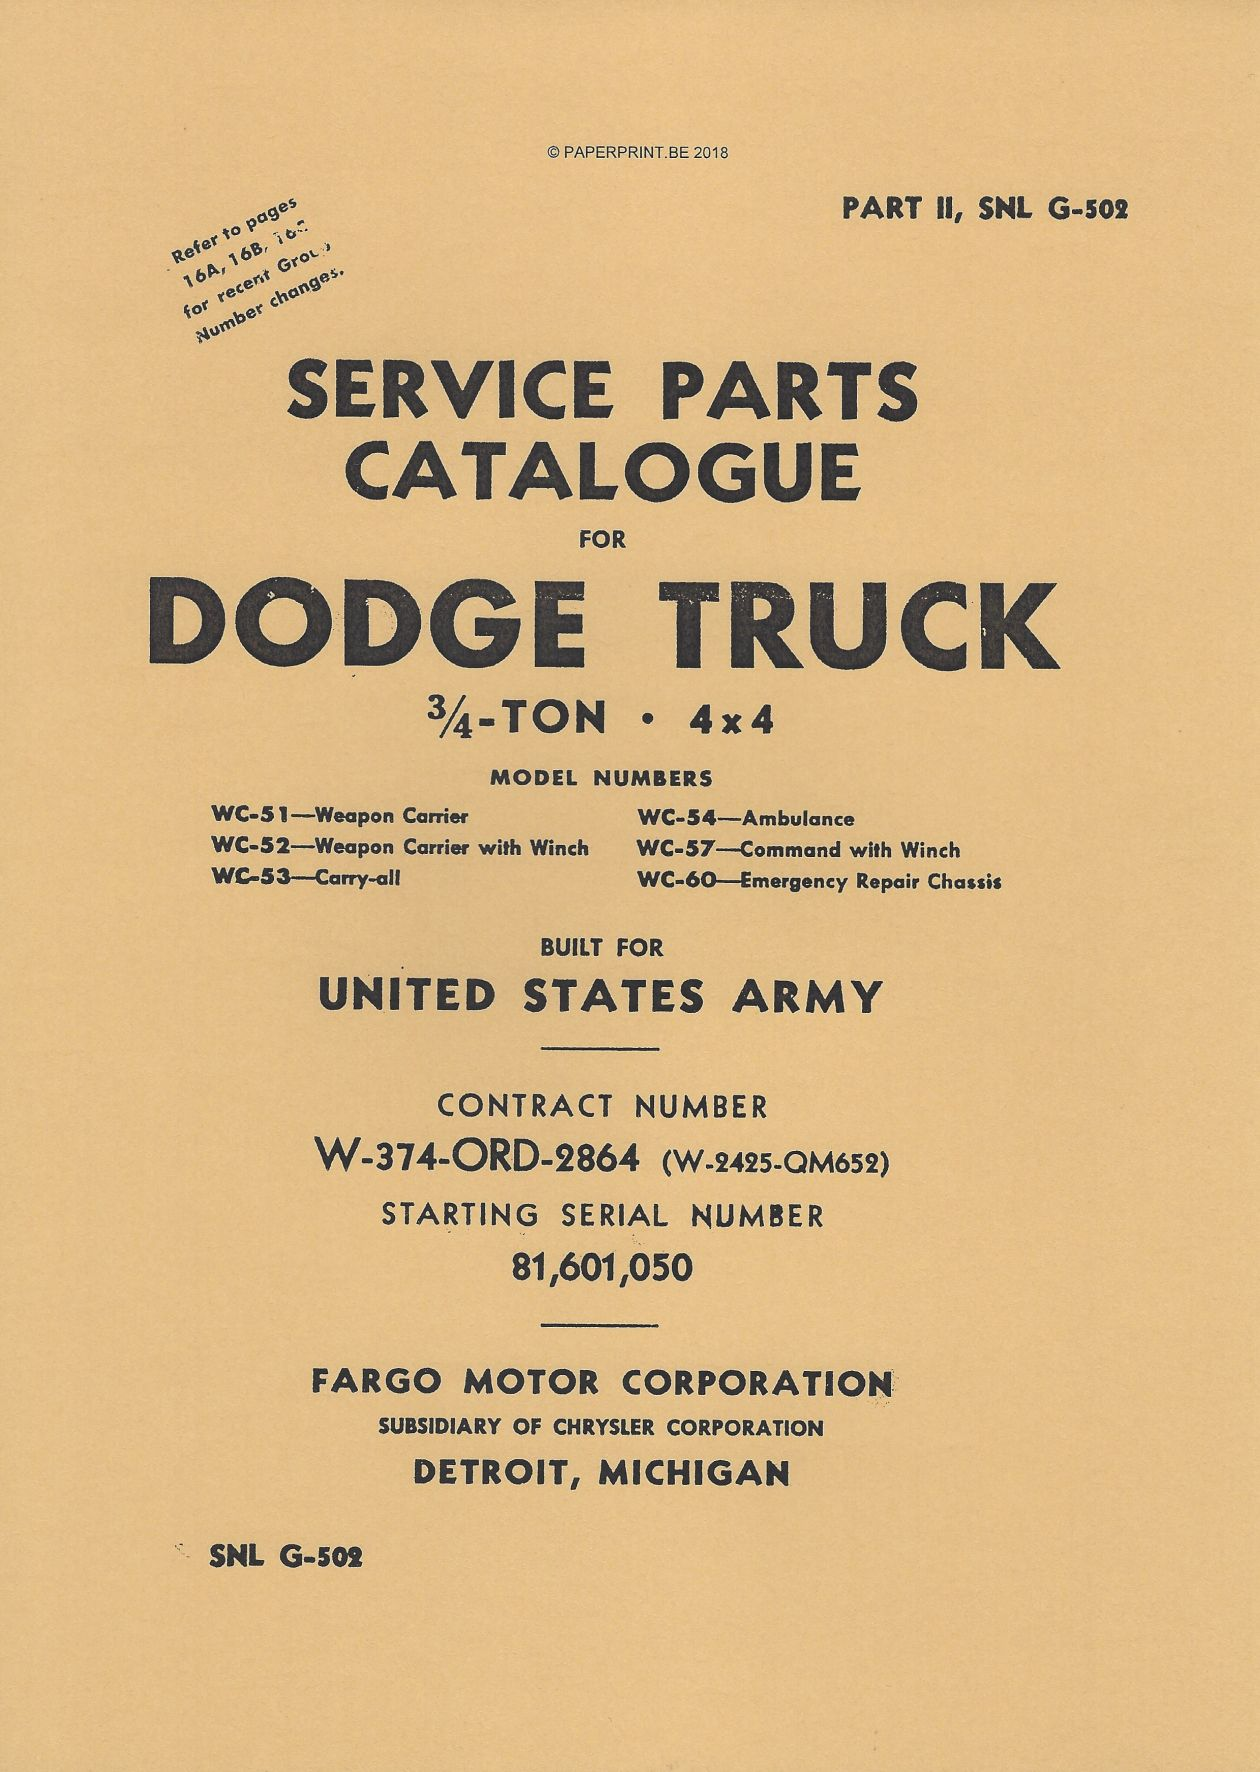 SNL G-502 EARLY SERVICE PARTS CATALOGUE FOR ¾ TON 4x4 DODGE WC